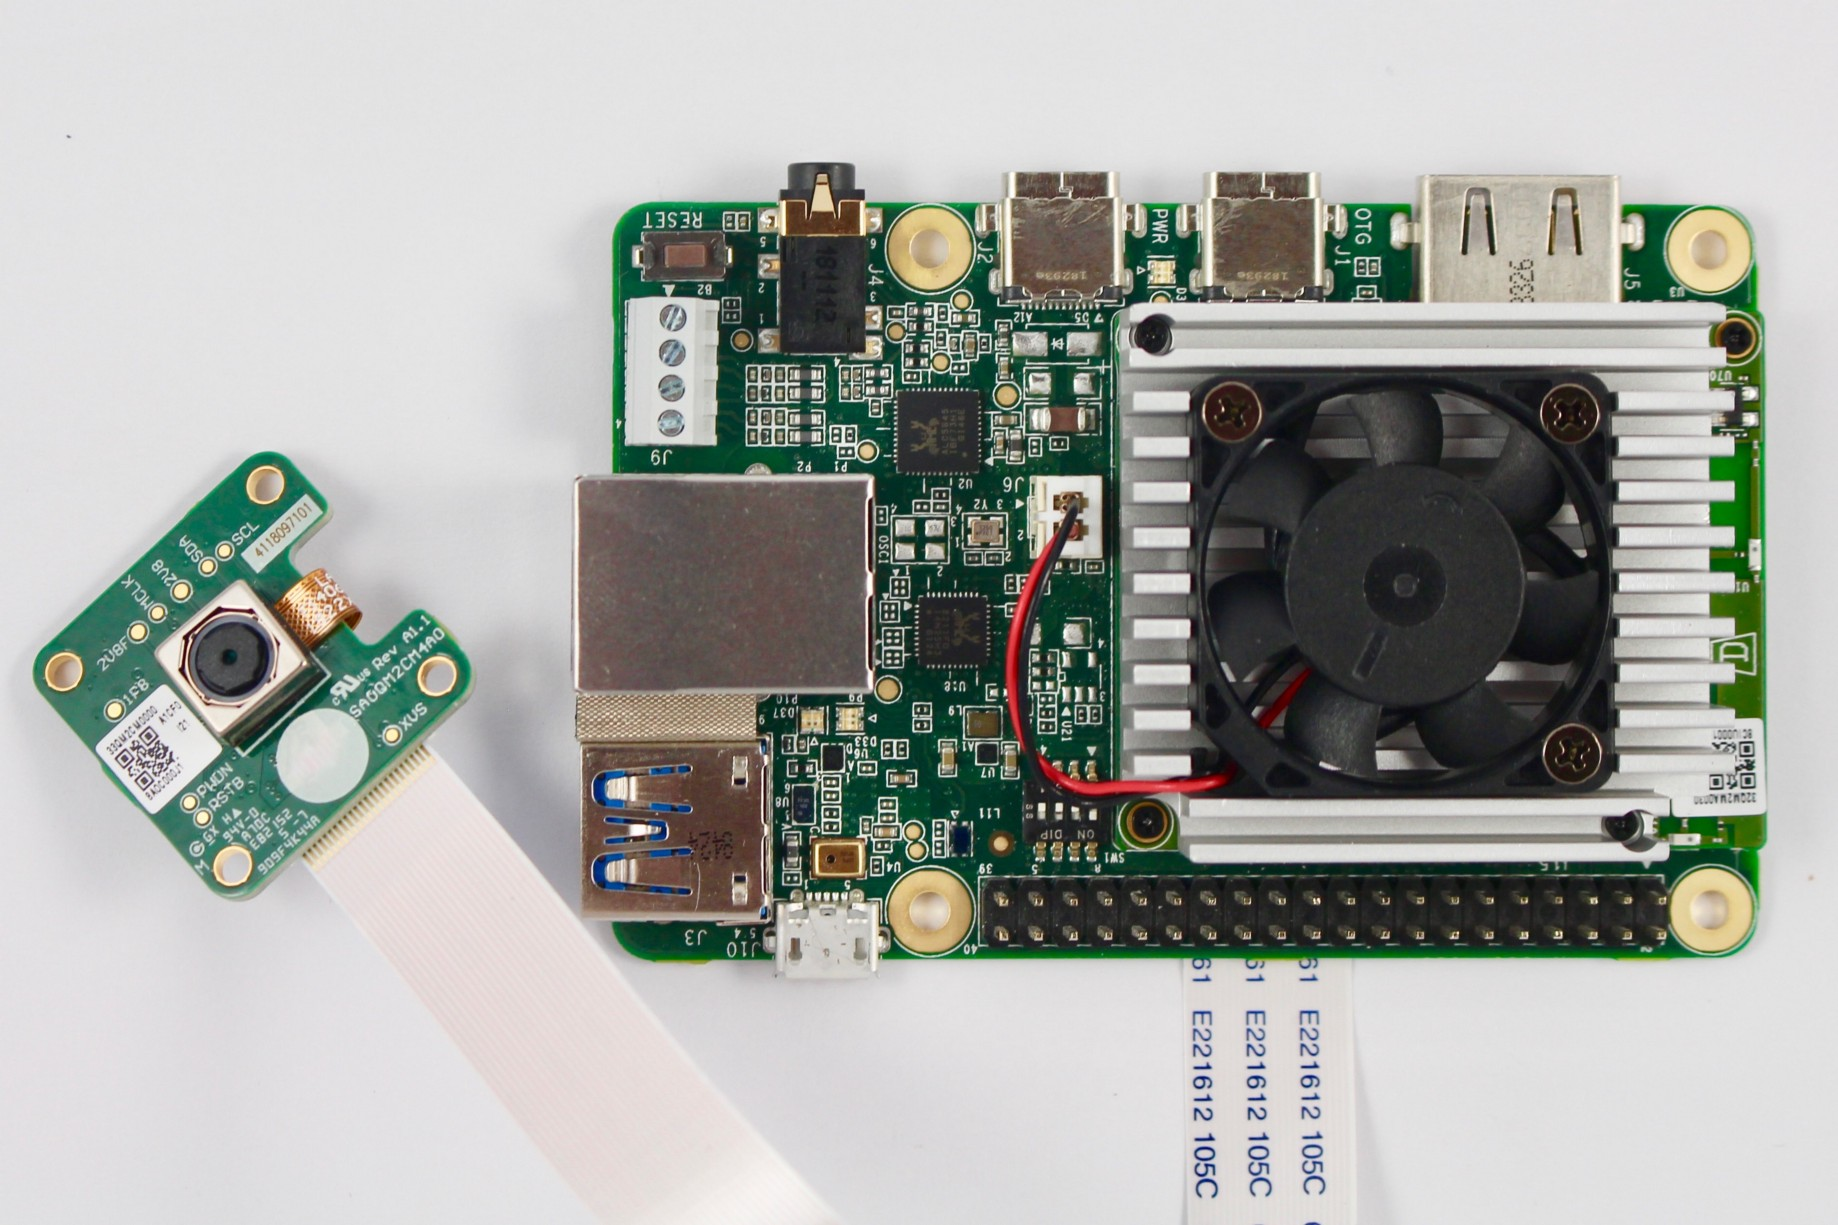 Hands on with the Coral Dev Board - Alasdair Allan - Medium